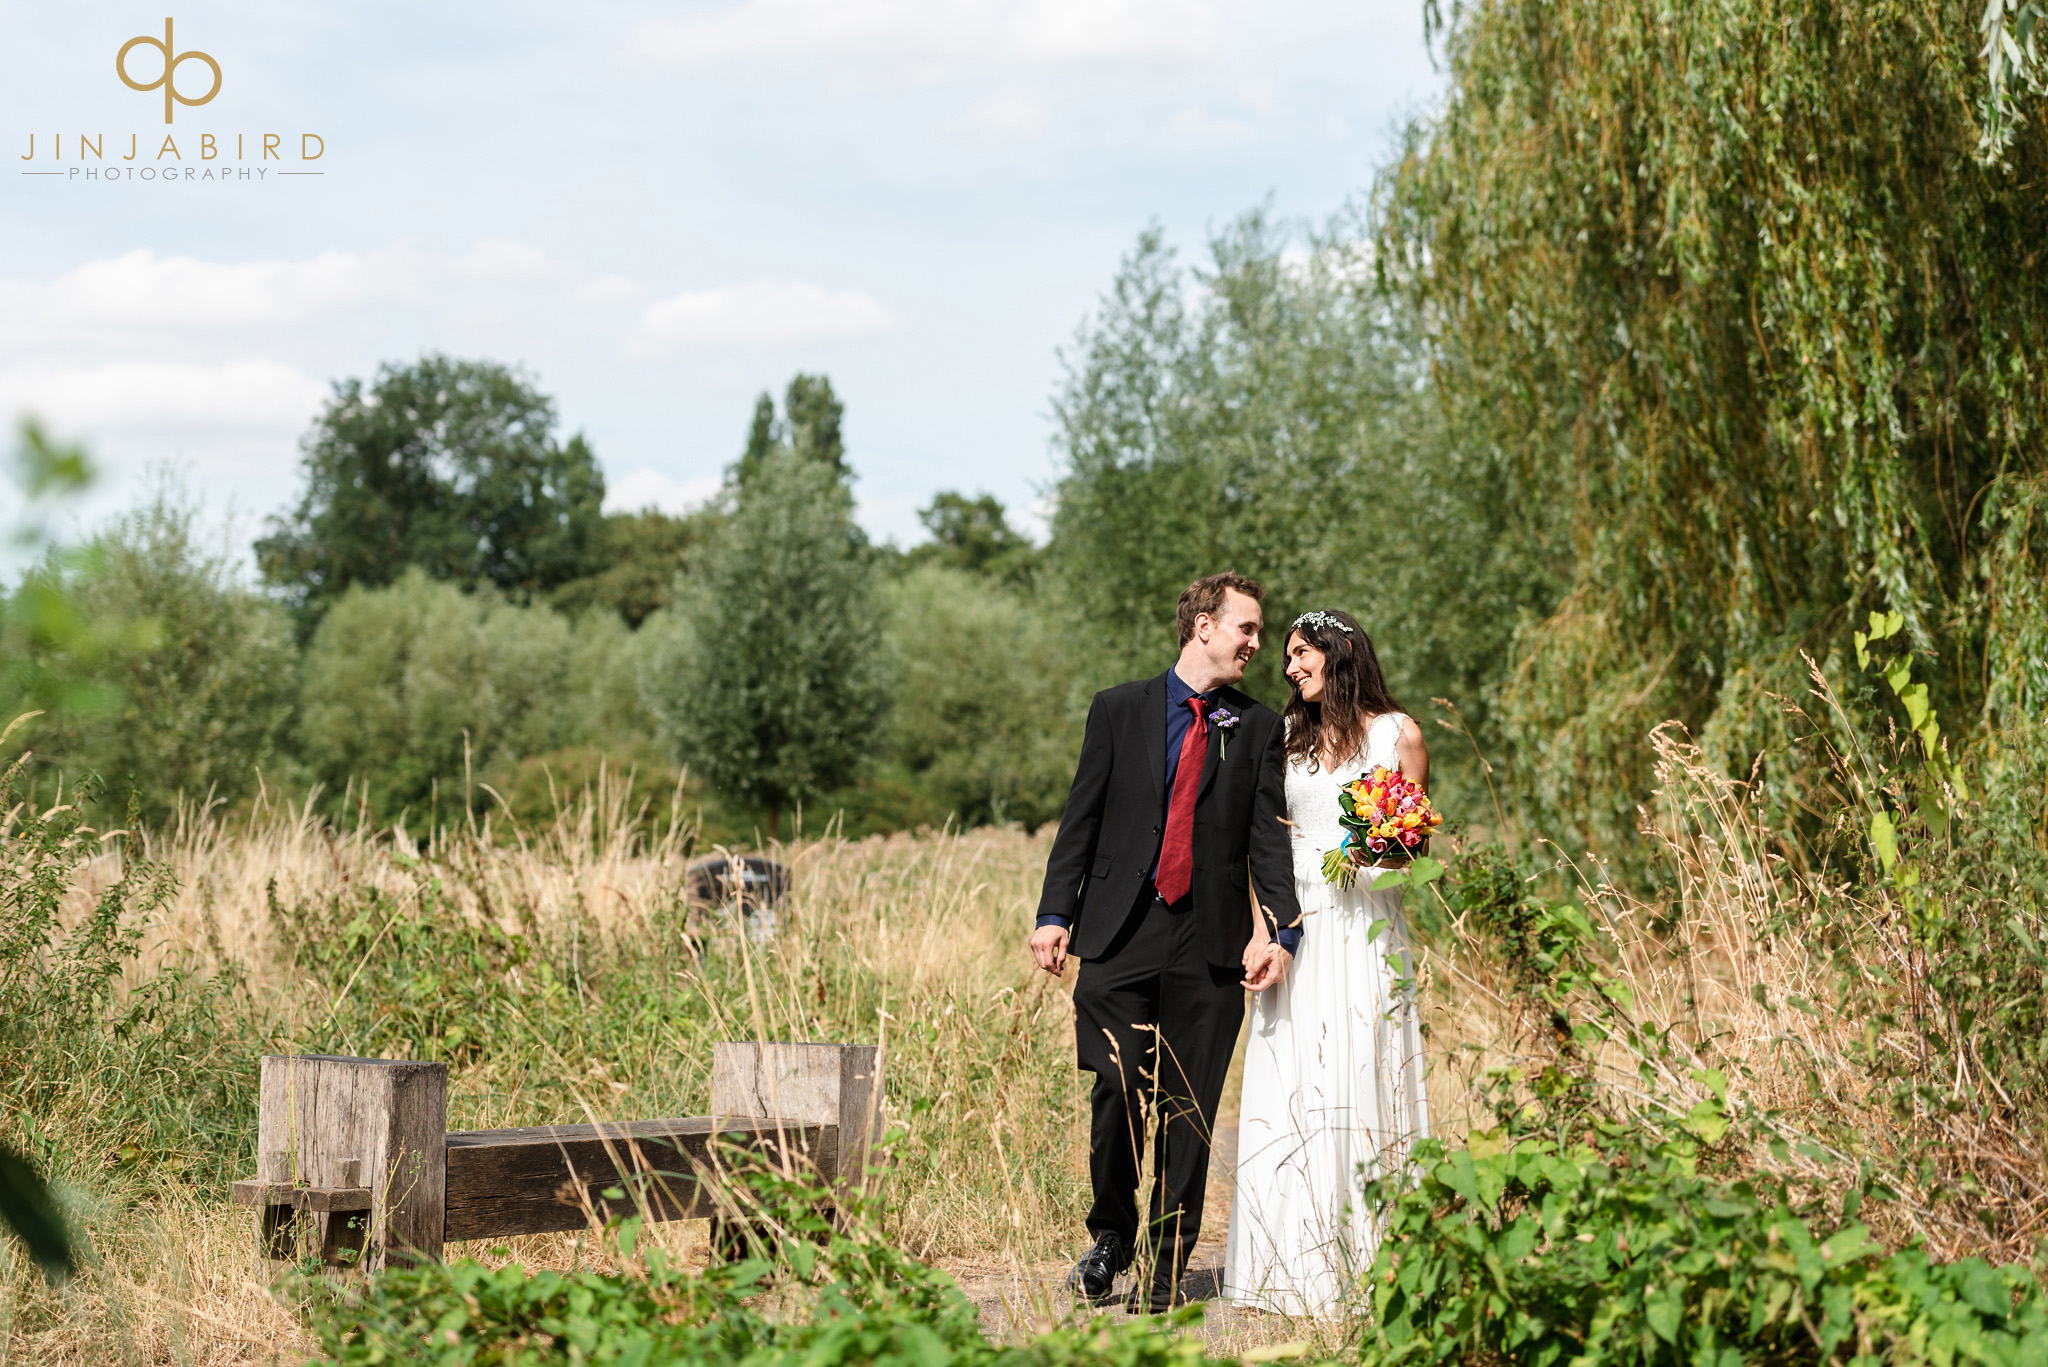 reportage weddings cambridge